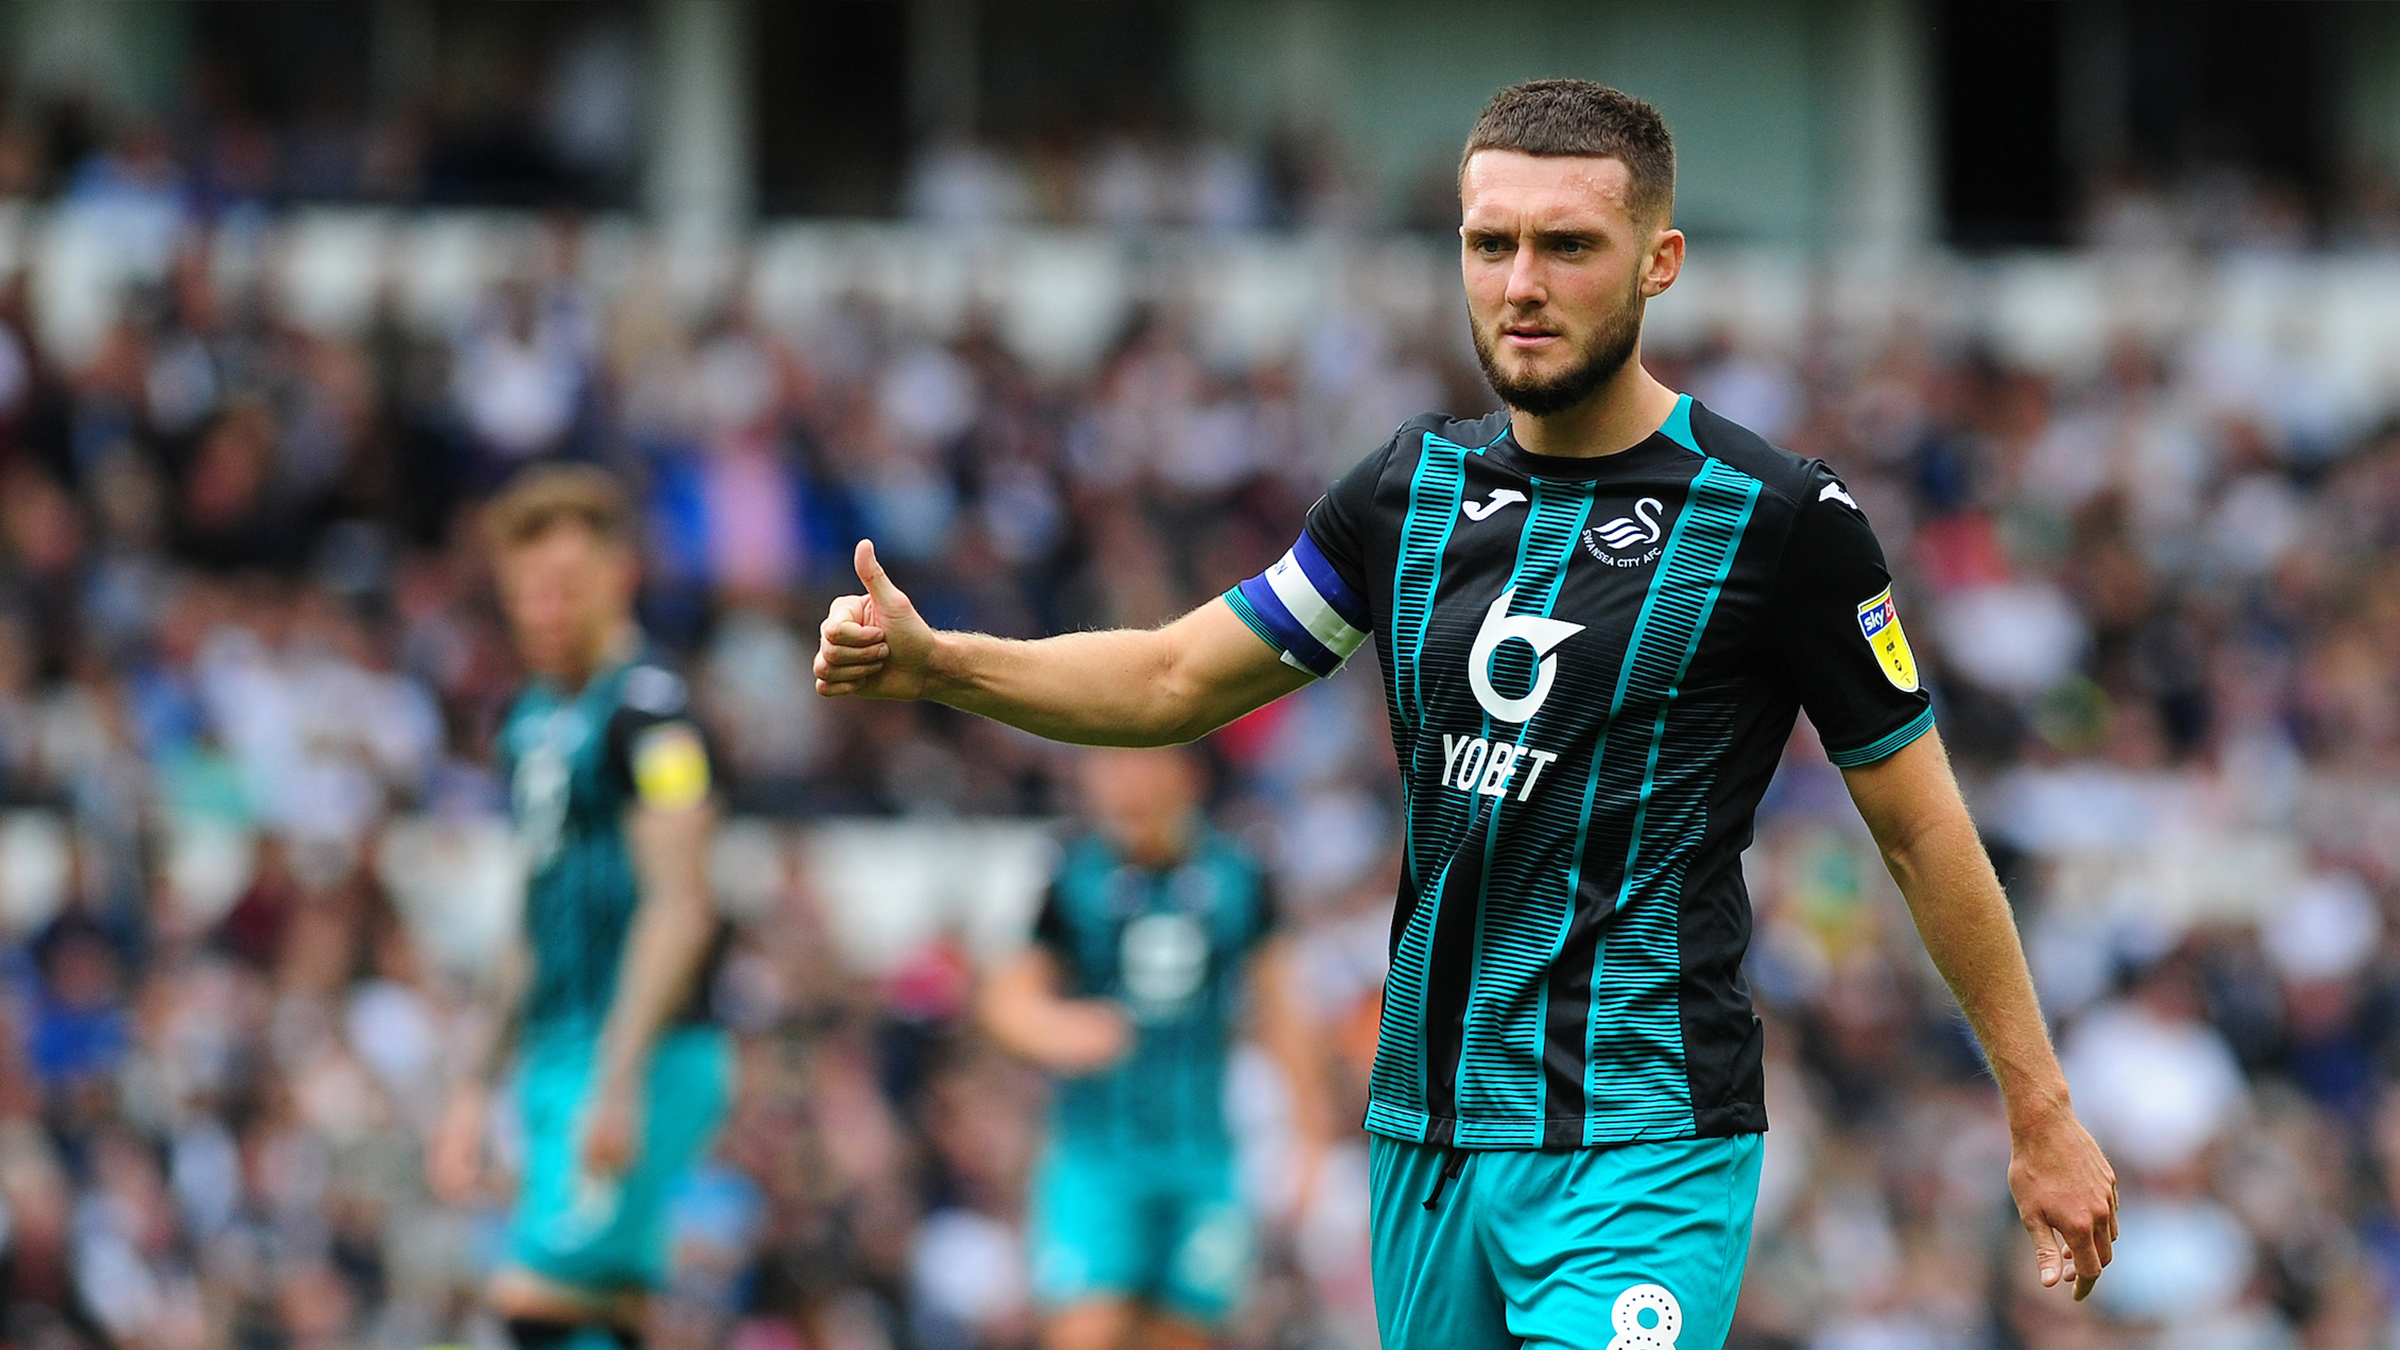 Matt Grimes | Northampton spell got me back on track | Swansea